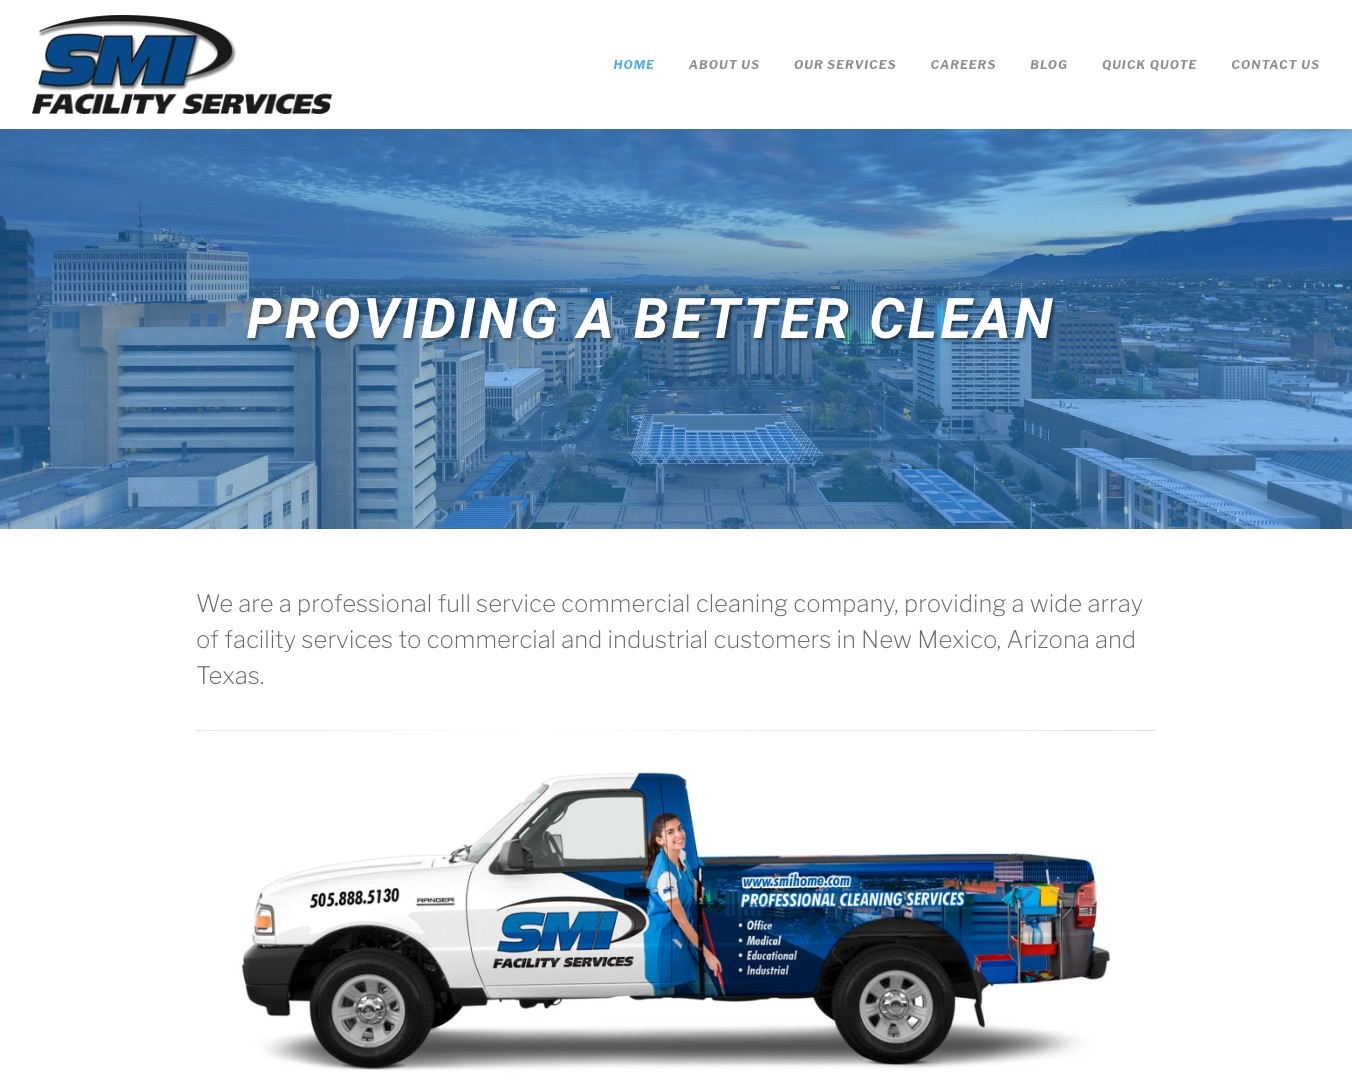 SMI Facility Services